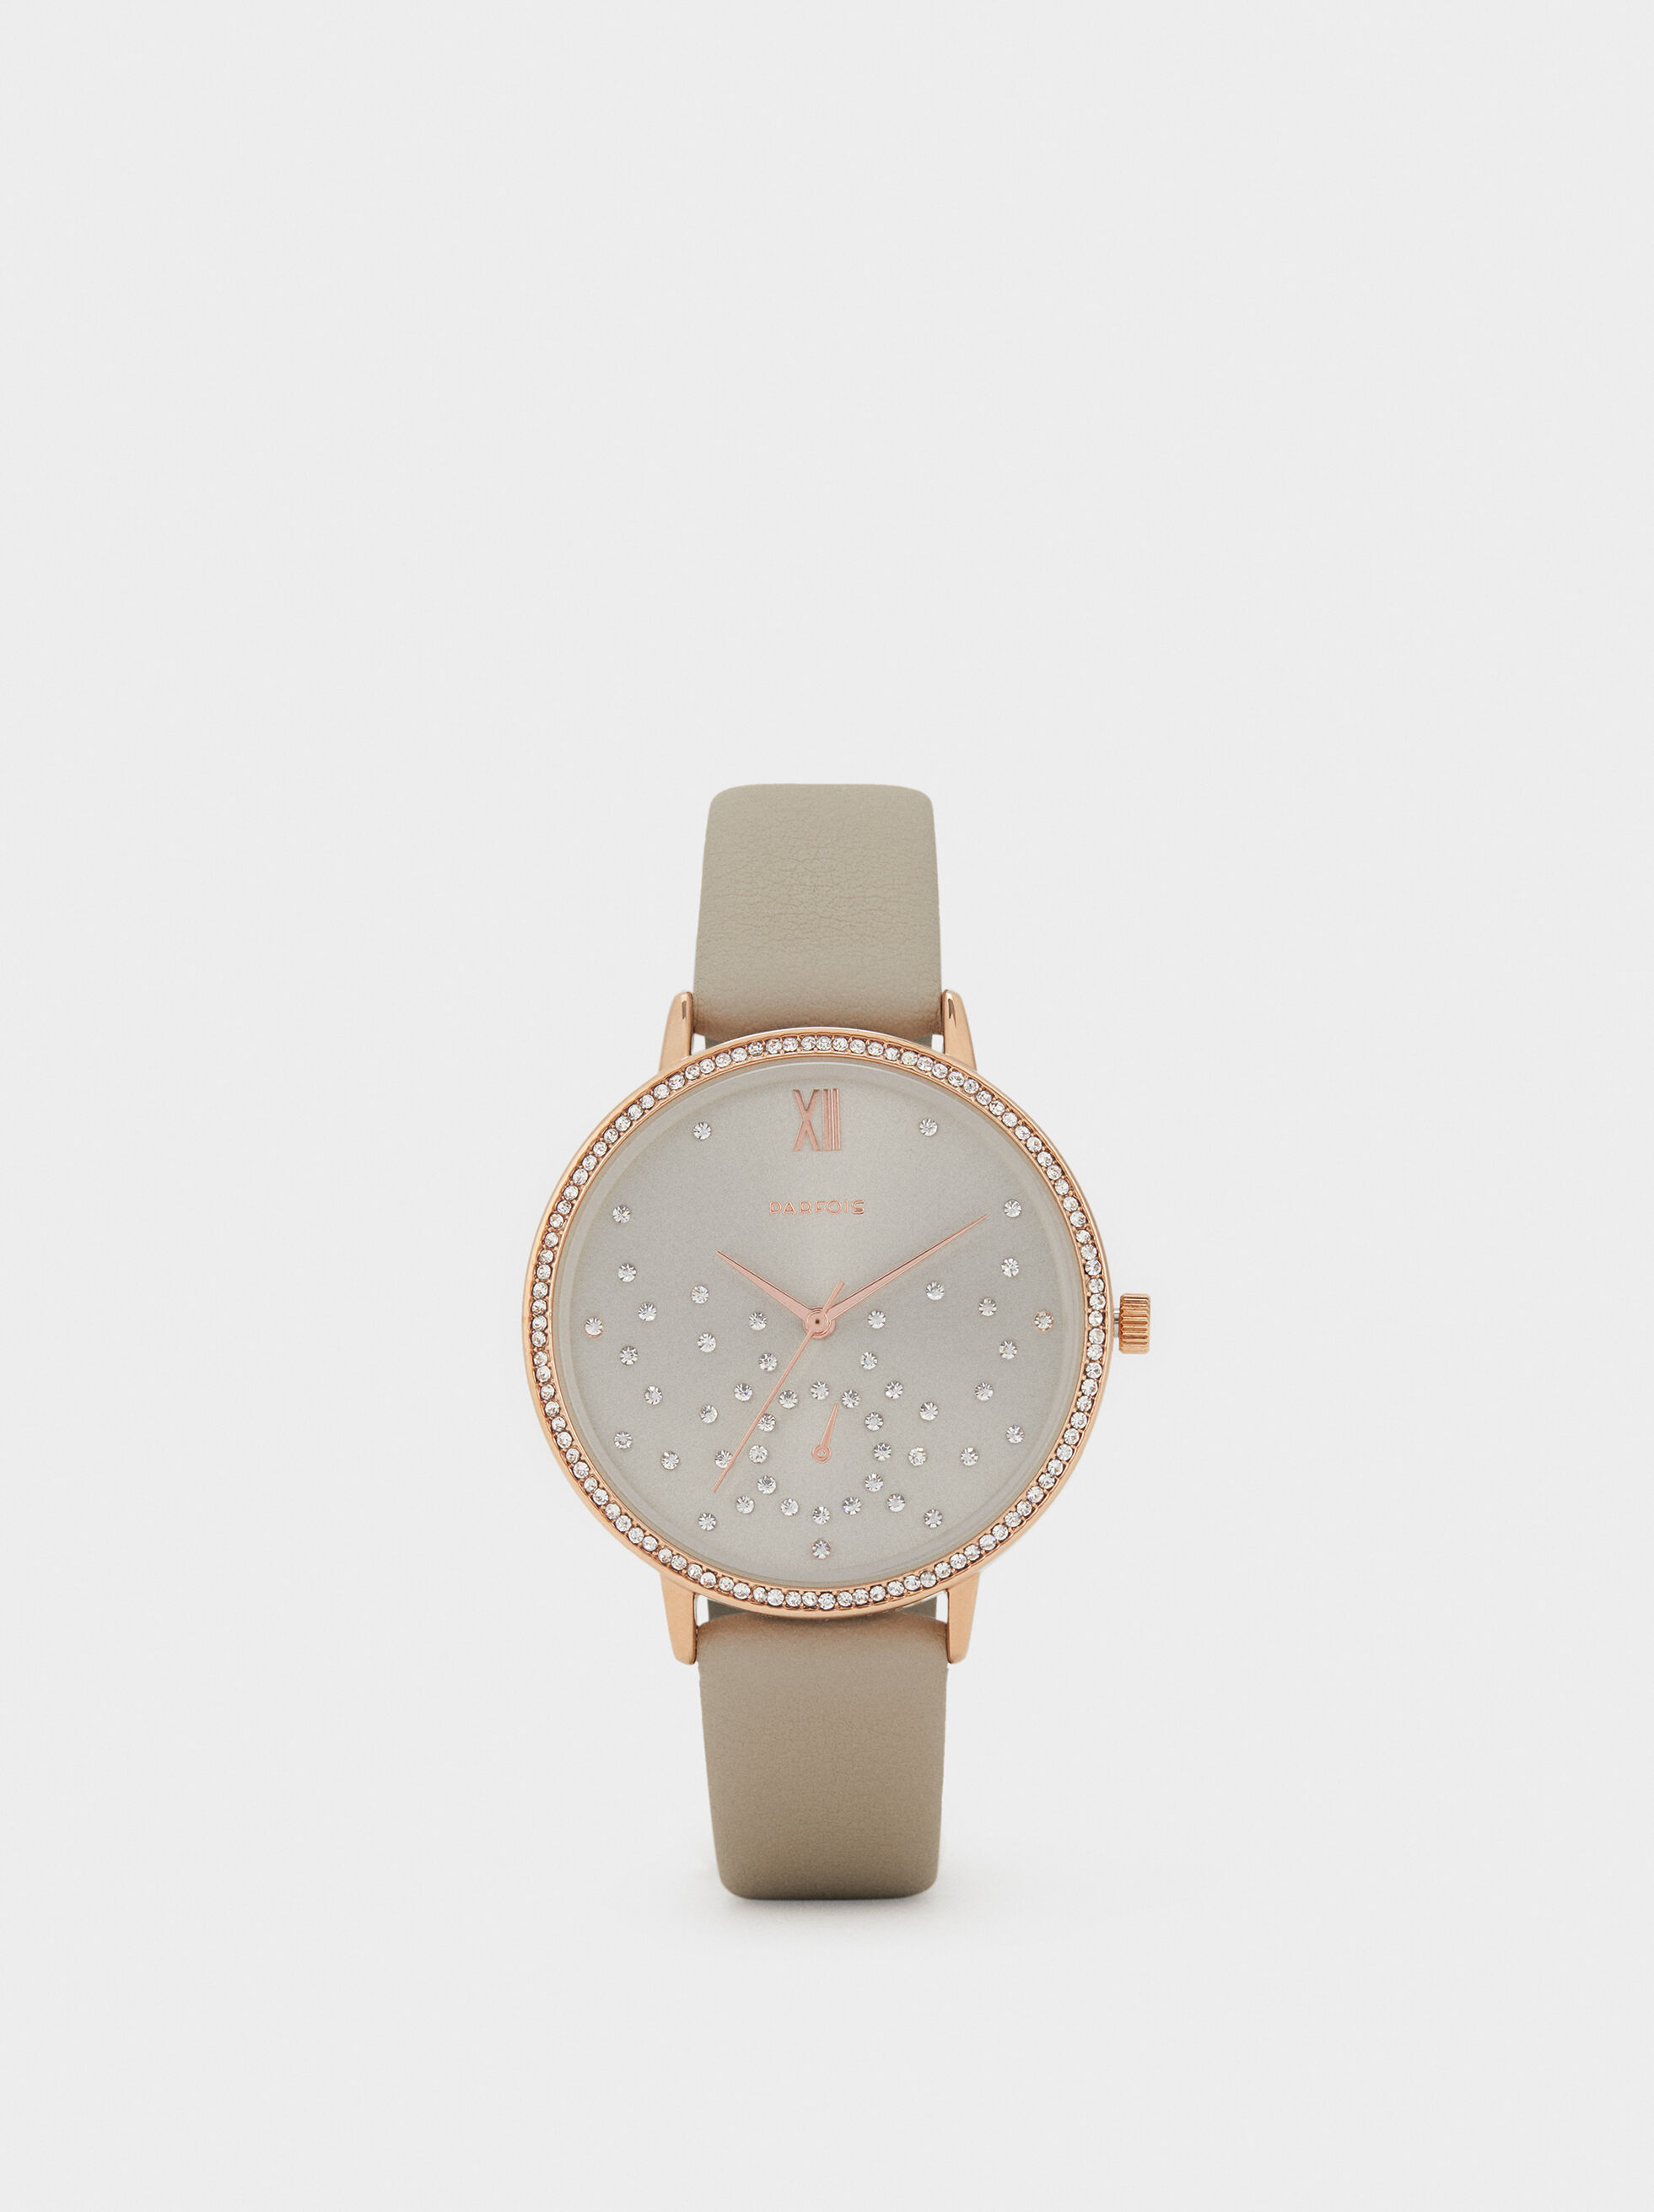 Watch With Rhinestones On The Face, Brown, hi-res